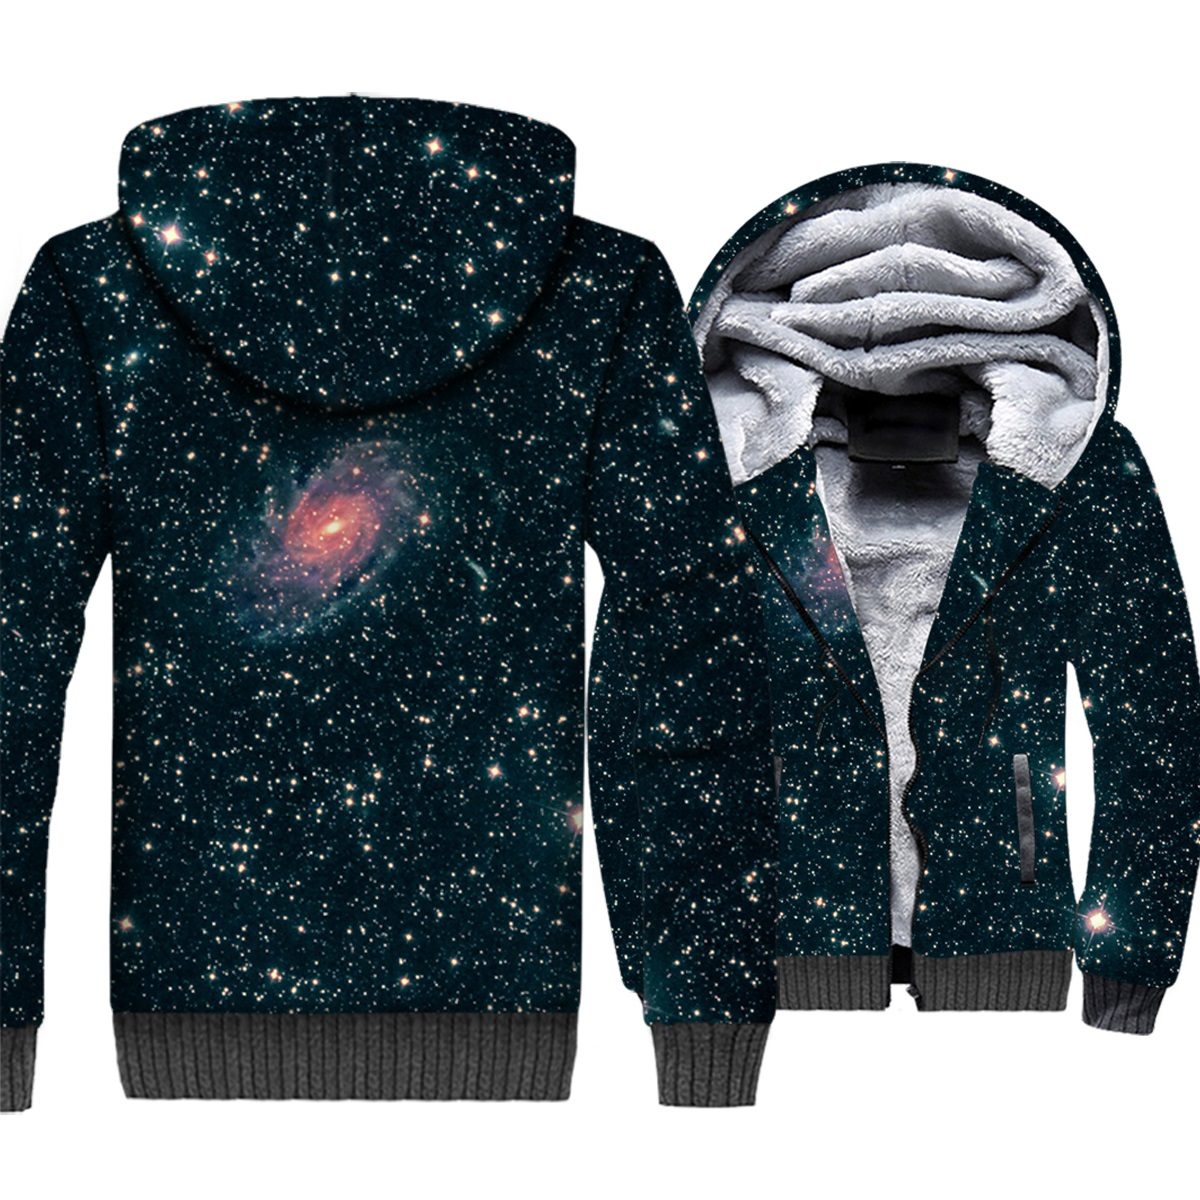 Men's Clothing 2019 Fashion 3d Pattern Printed Space Moon Meteor Top Hip Hop Sweatshirts Sportswear Winter Spring Hoodies Male Fleece Warm Tops High Quality Goods